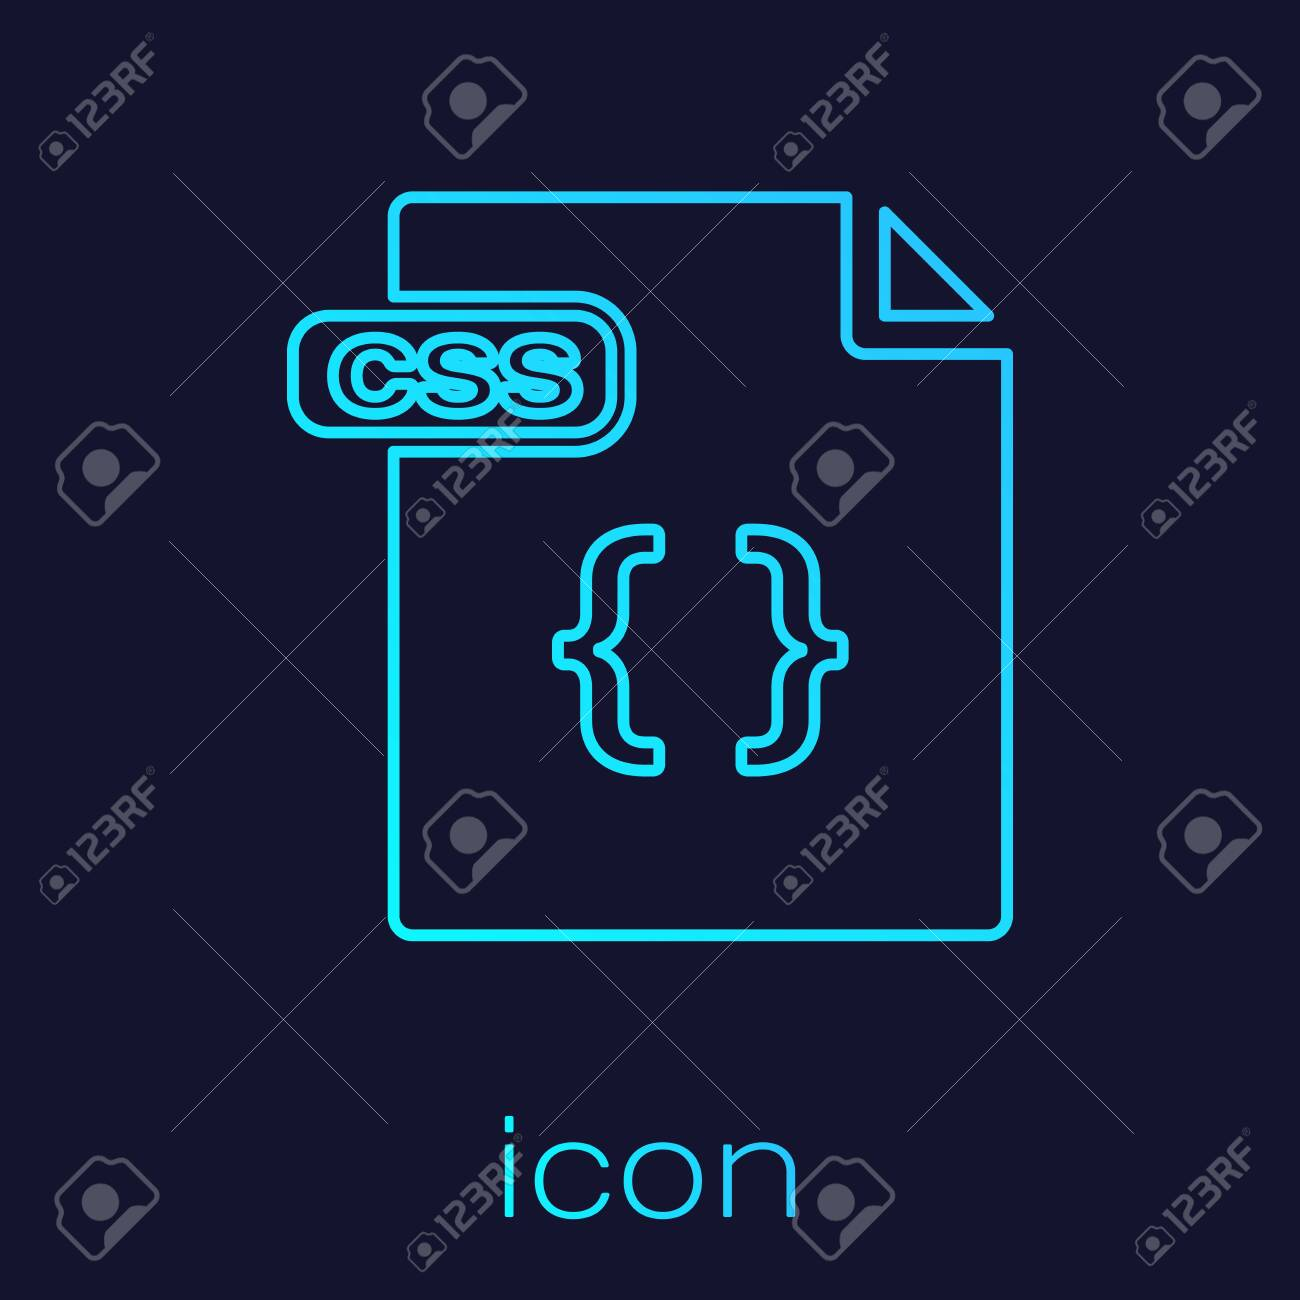 Turquoise line CSS file document  Download css button icon isolated